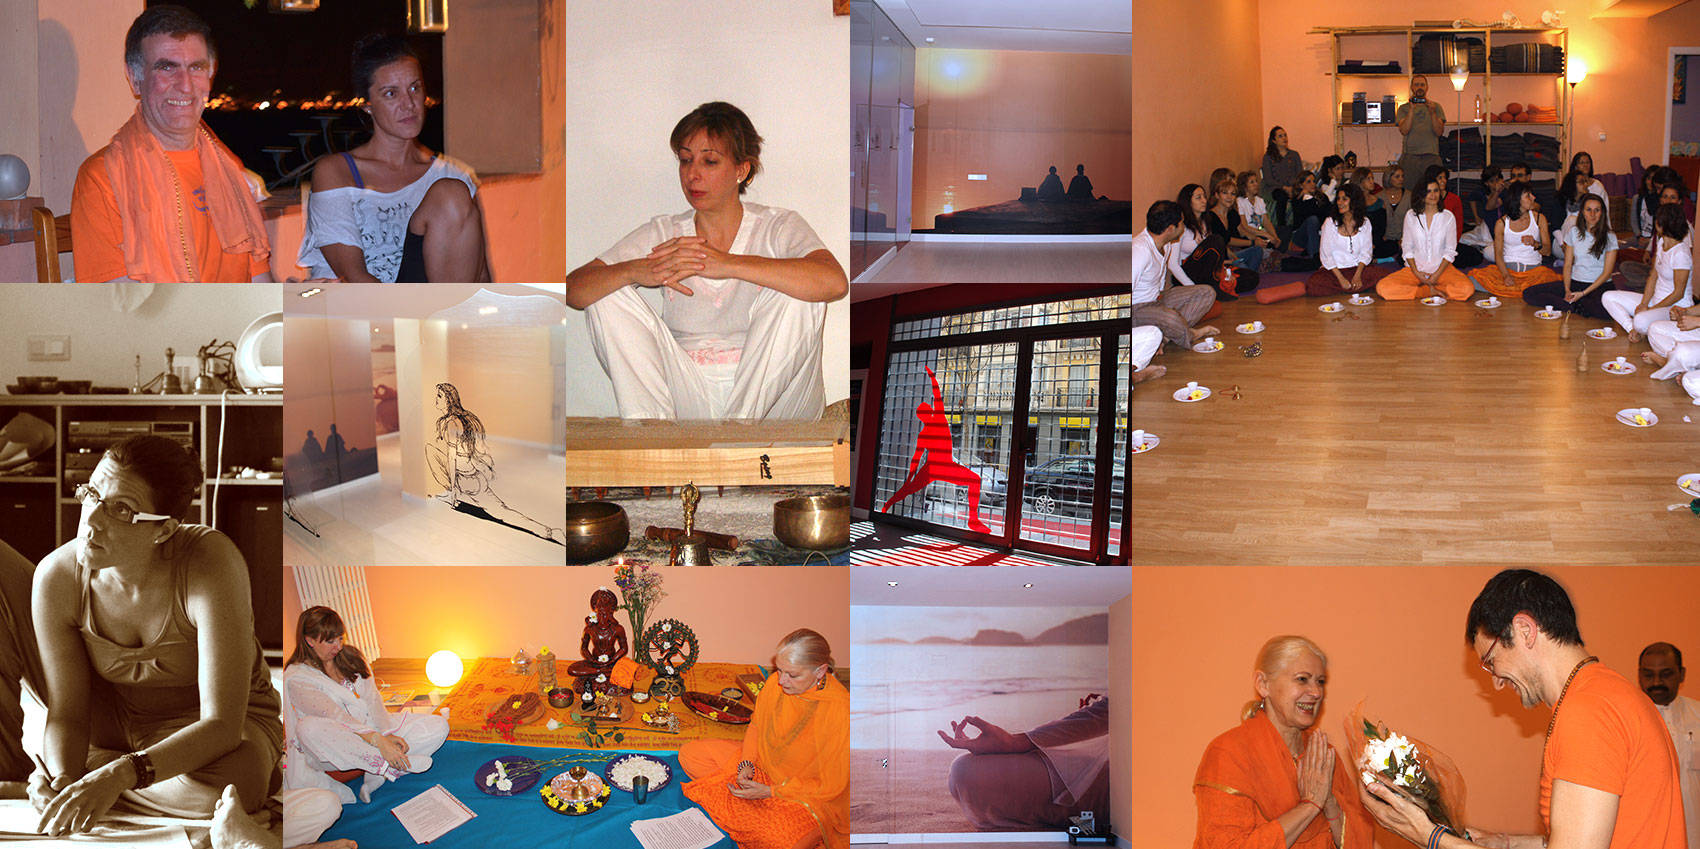 Collage Escuela de Yoga